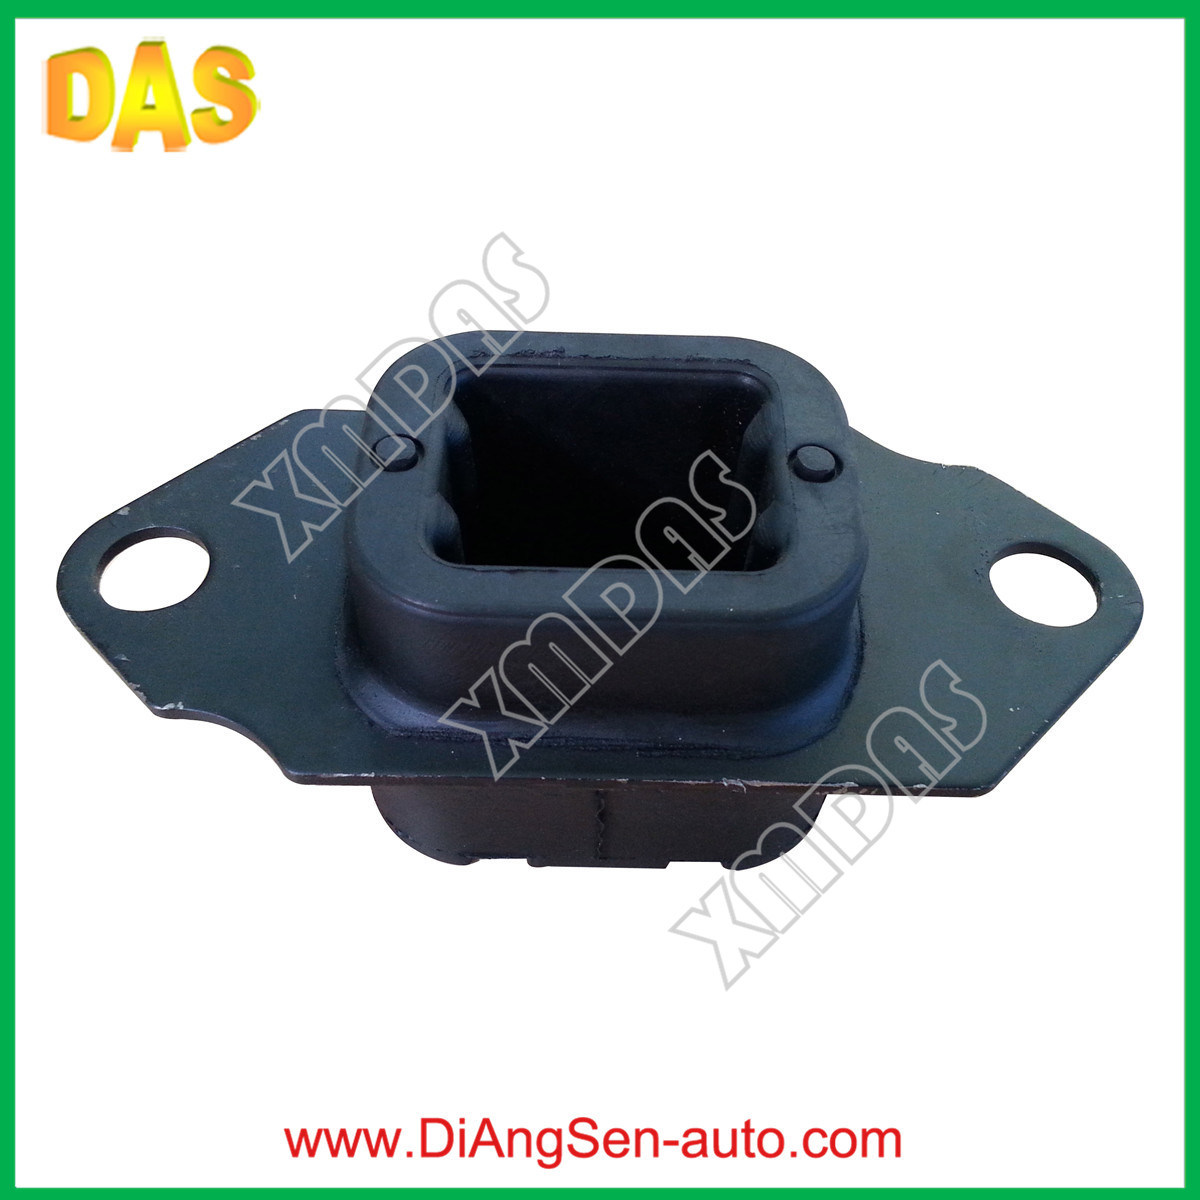 Auto/Car Rubber Parts Engine Mounting for Nissan Sunny (11210-1AS0A, 11220-1HA0B, 11360-1AC2C)